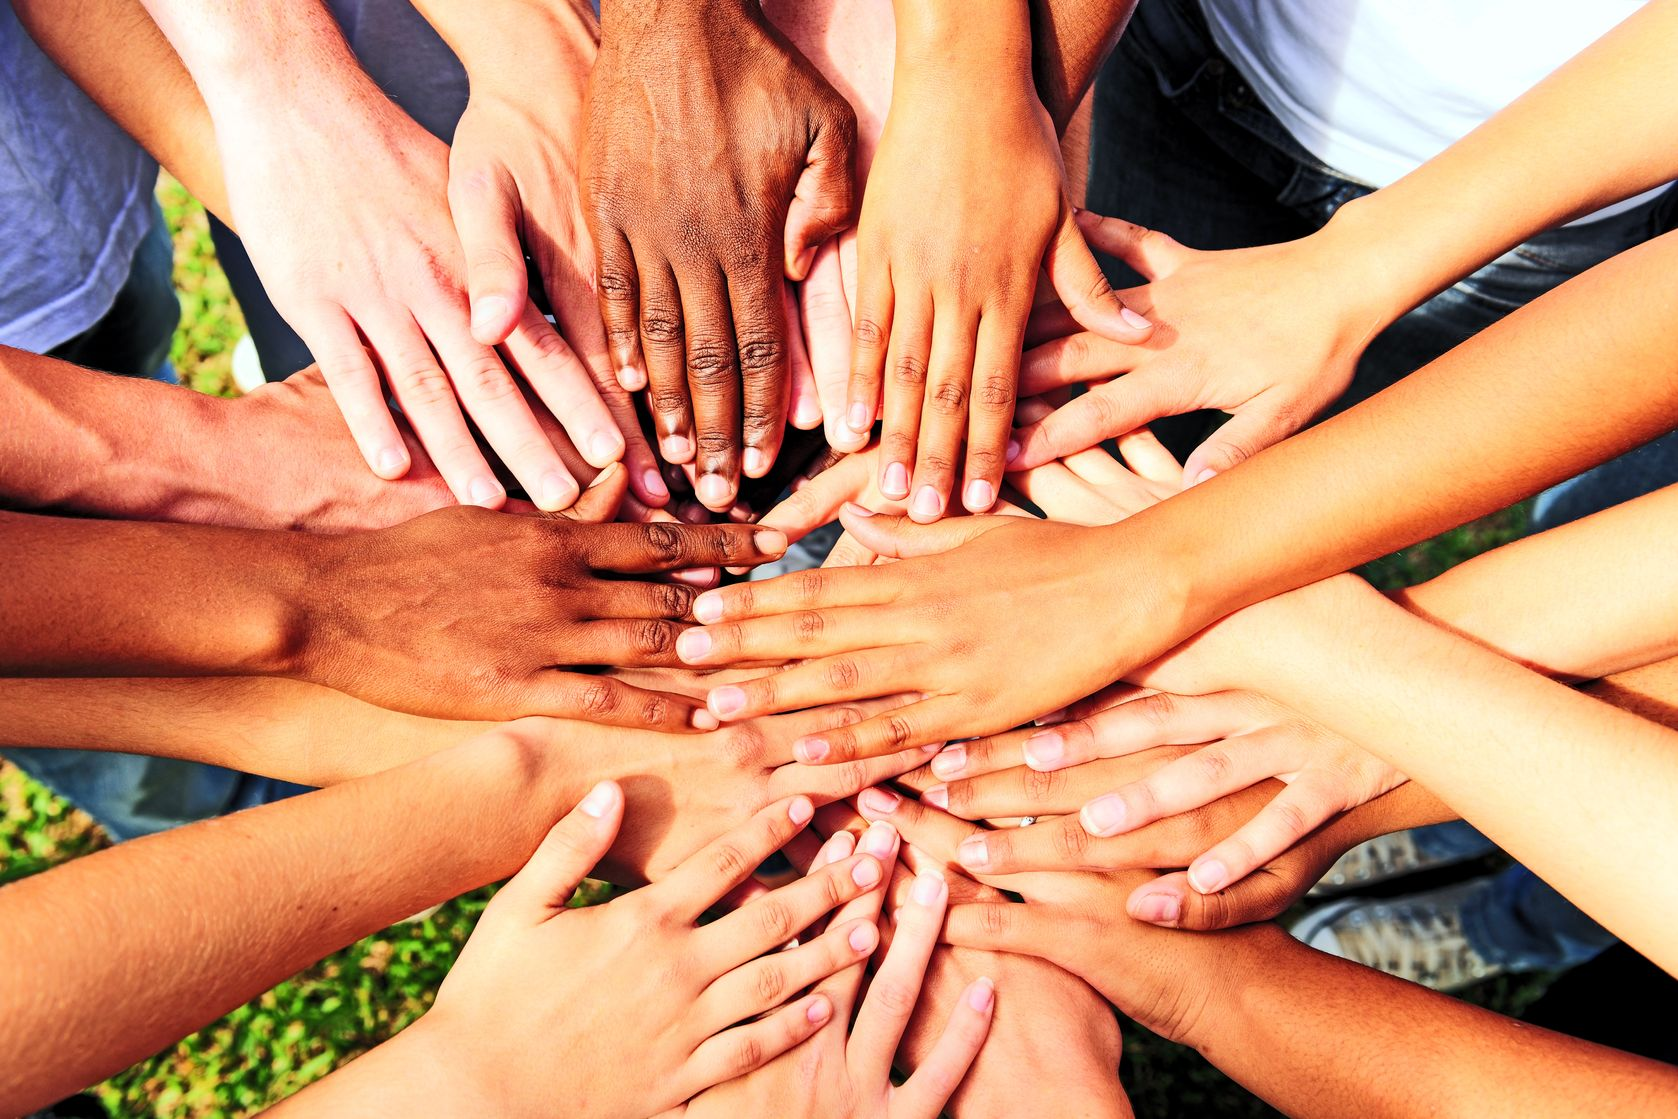 9477132 - many hands together: group of people joining hands showing unity and support